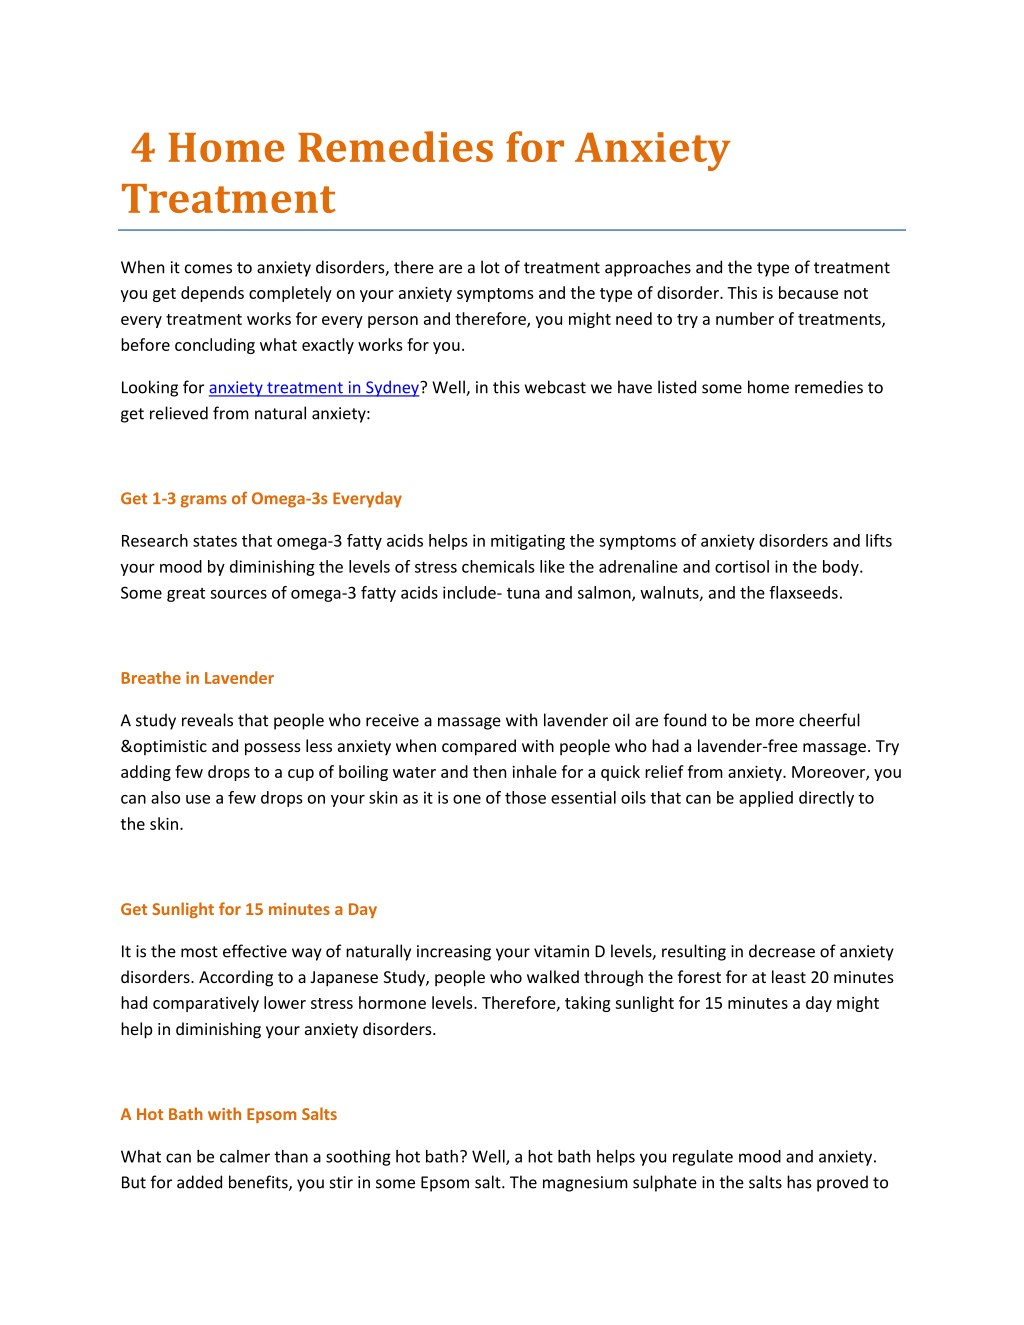 ppt - 4 home remedies for anxiety treatment powerpoint presentation